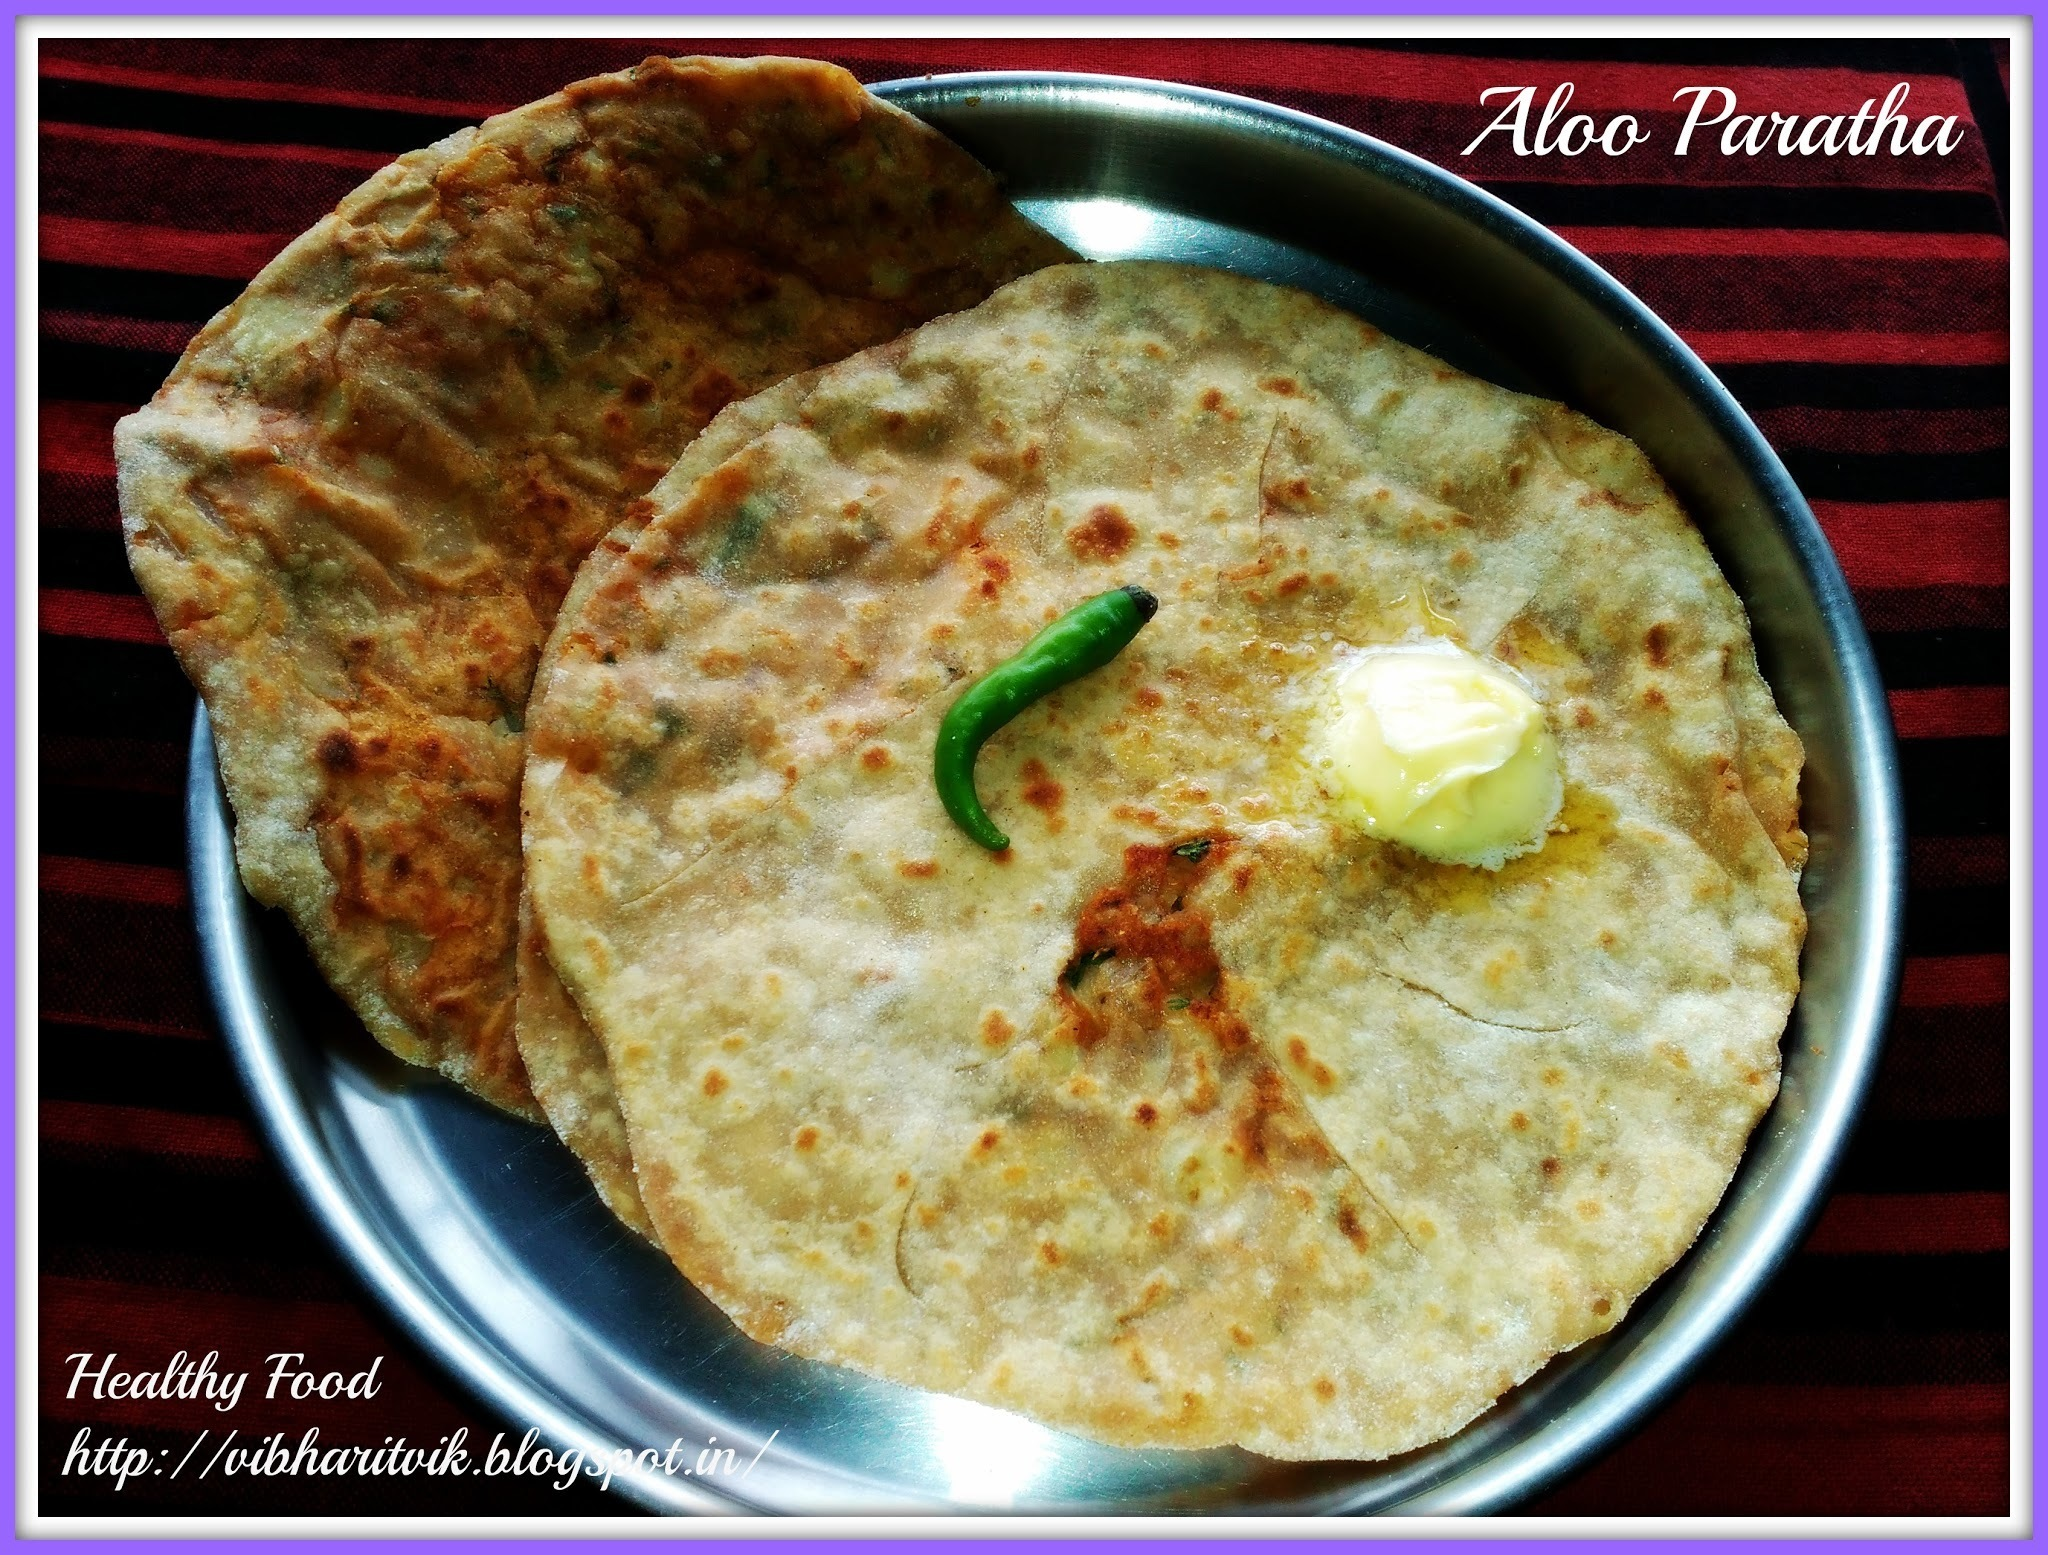 ALOO PARATHA / INDIAN BREAD STUFFED WITH POTATO / PUNJABI ALOO PARATHA